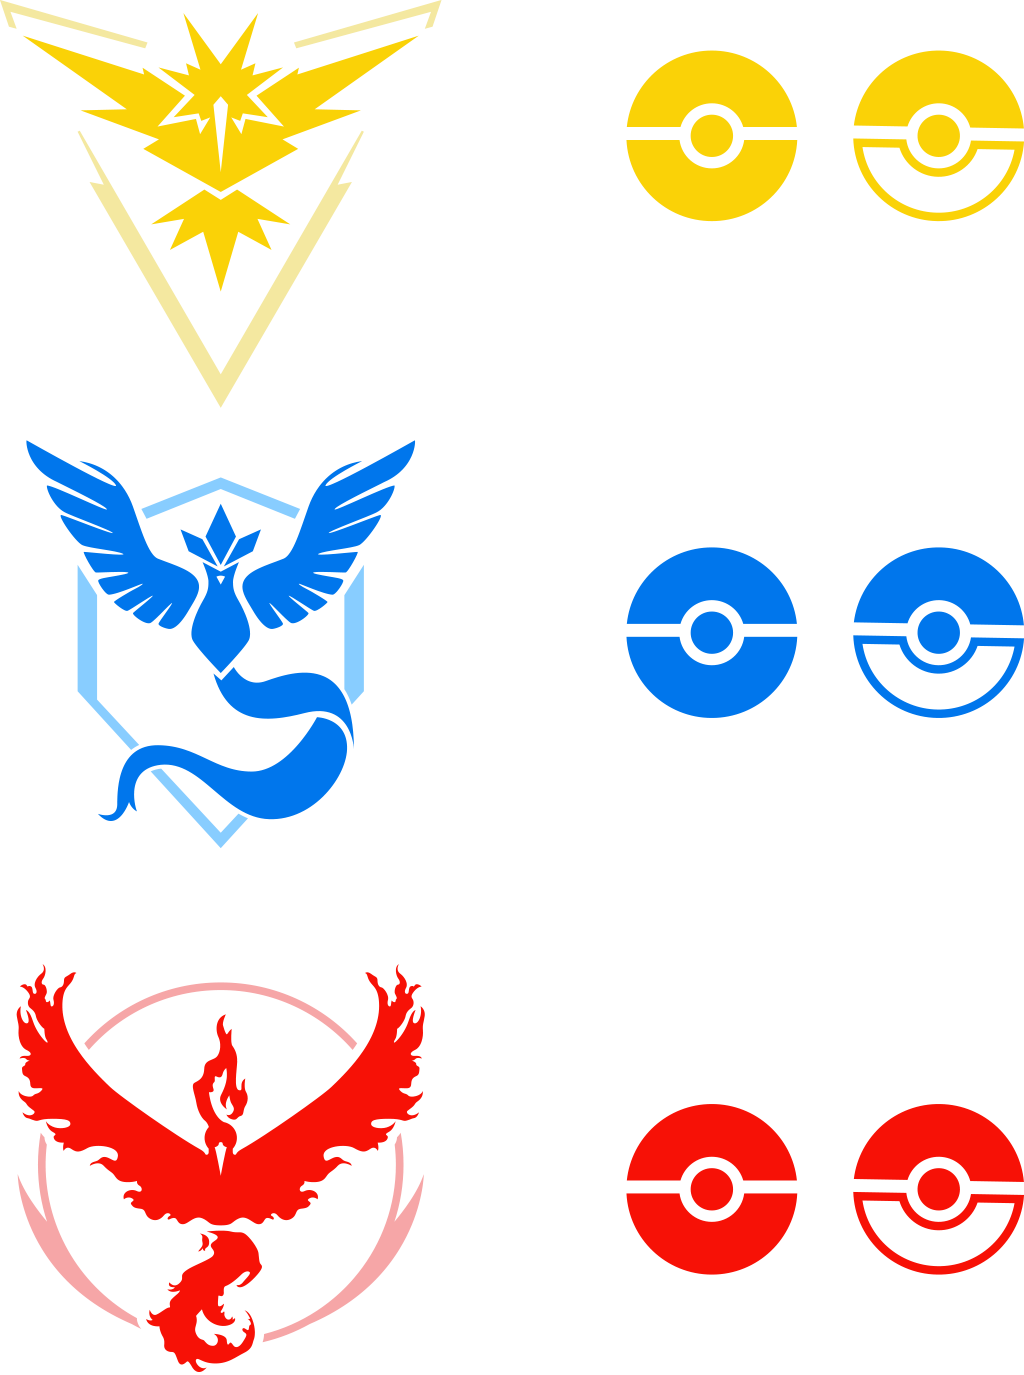 pokemon go team png logos